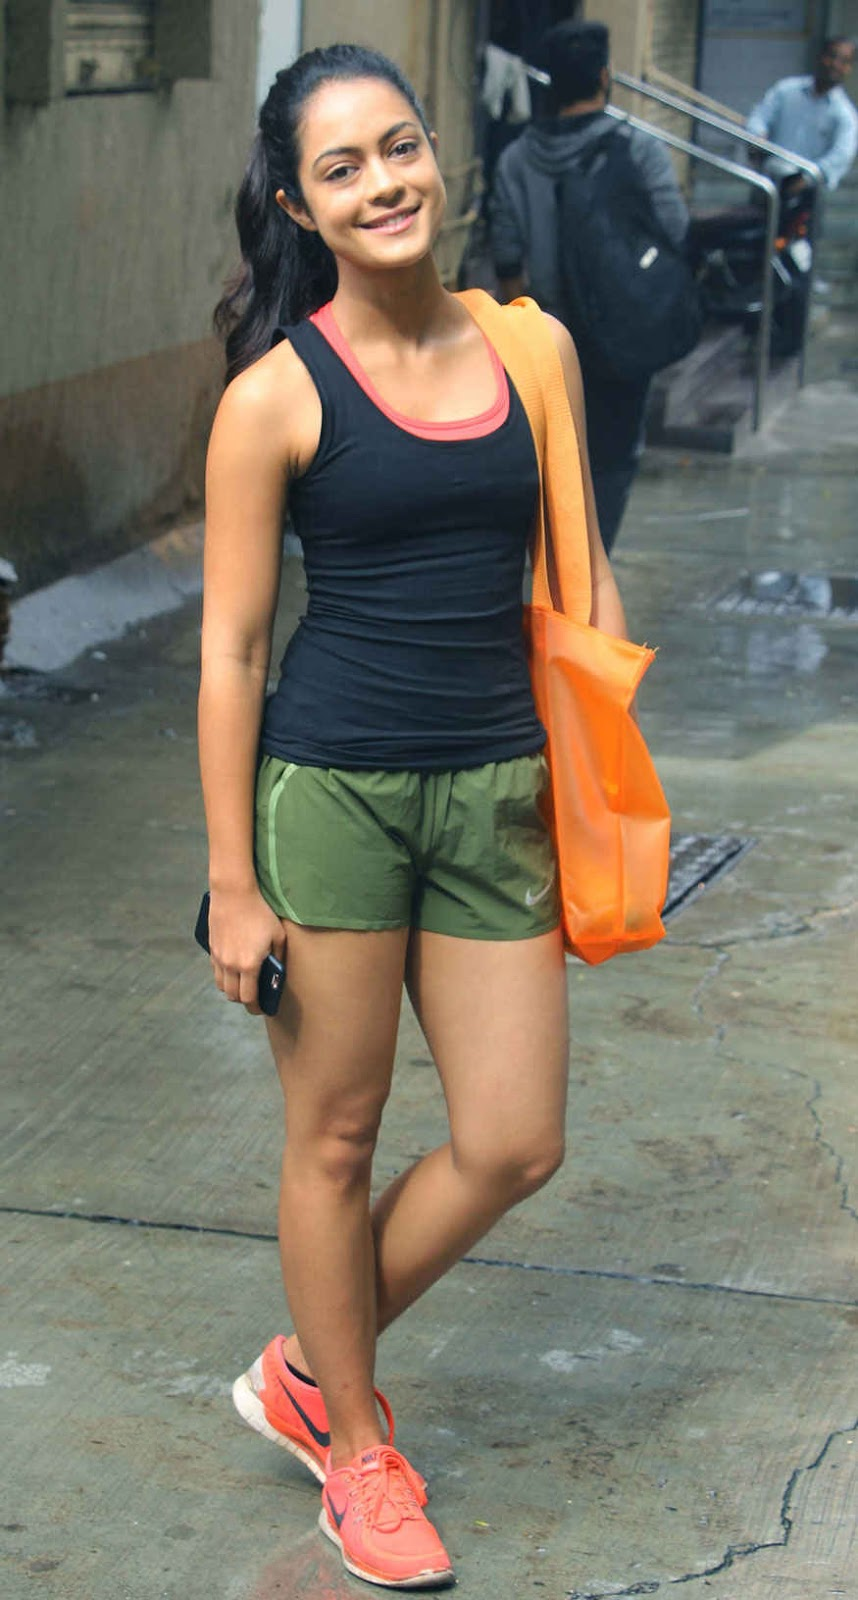 Anya Singh at 'Ten The Health Spa' in Bandra West, Mumbai